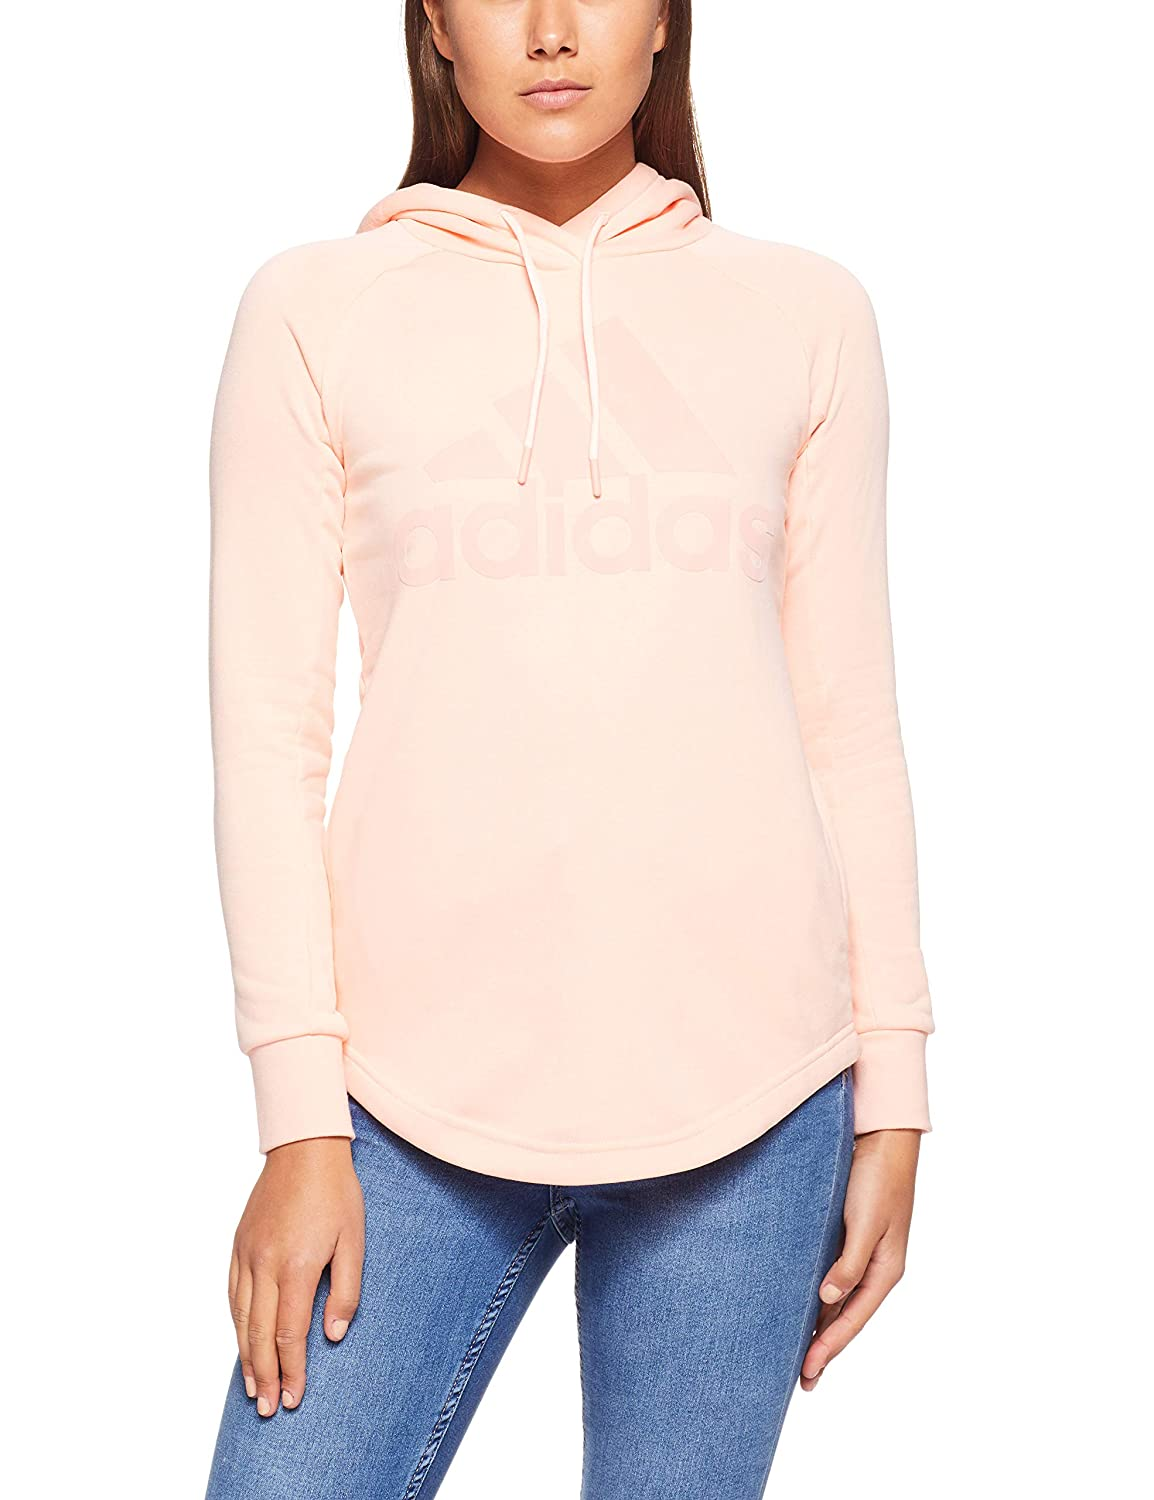 adidas Trefoil Crew Sweatshirt, Felpa Donna: Amazon.it